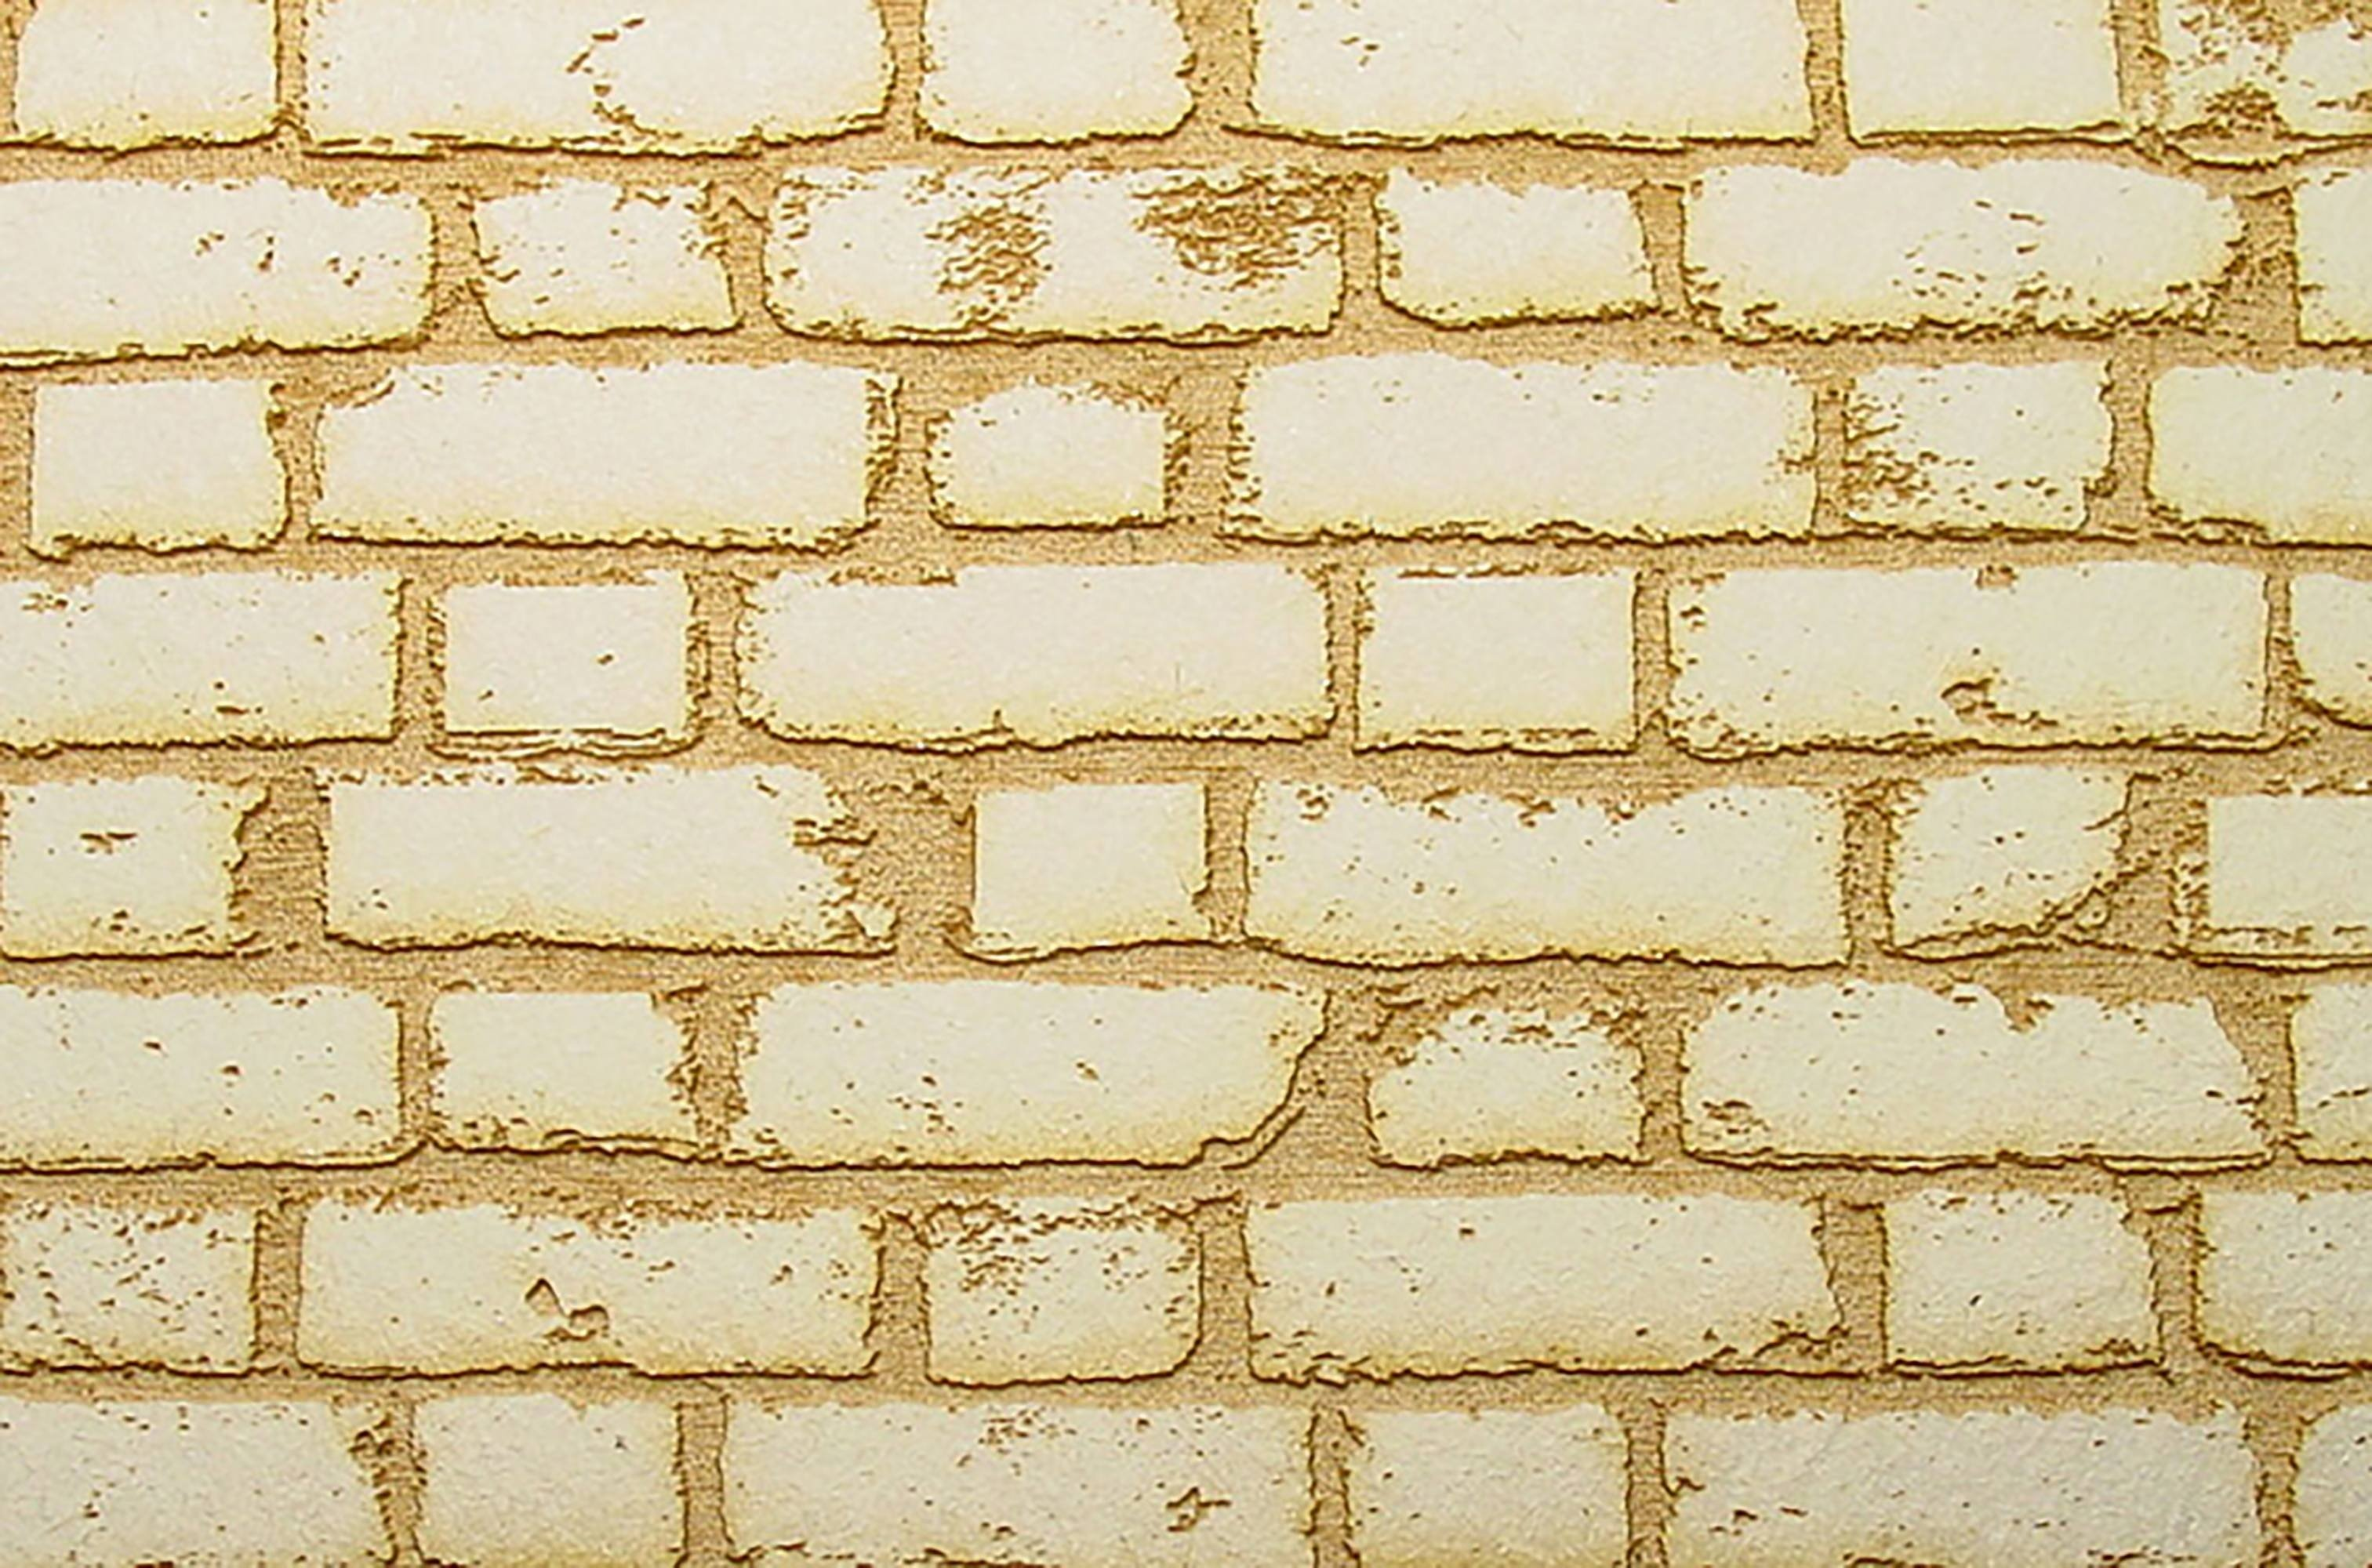 Bricks etched with laser cutter